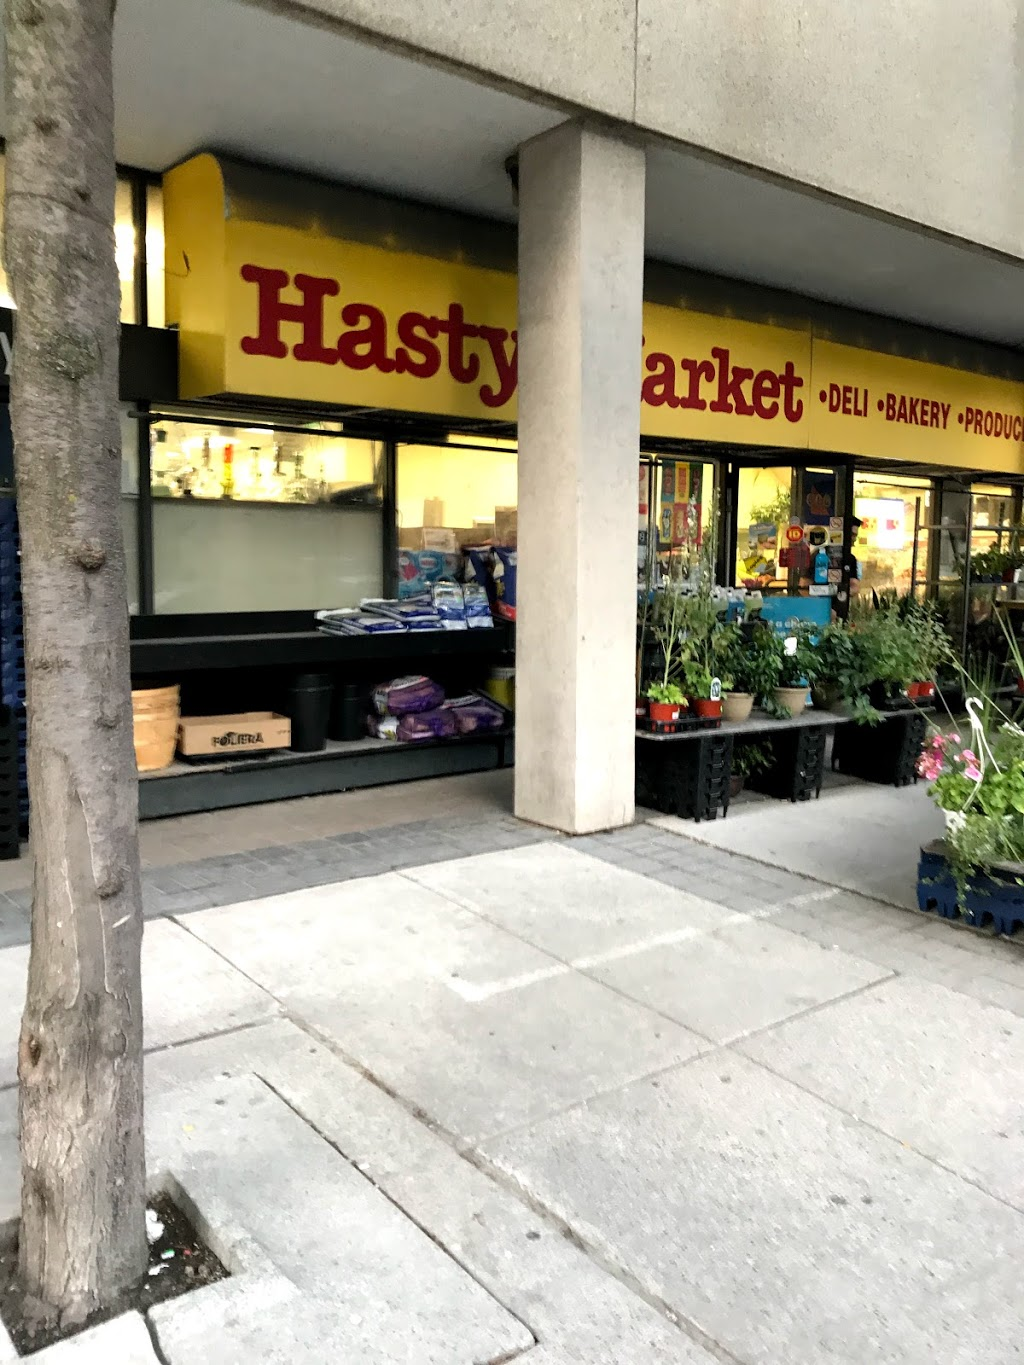 Hasty Market | convenience store | 133 Redpath Ave, Toronto, ON M4P 2K5, Canada | 4164814553 OR +1 416-481-4553